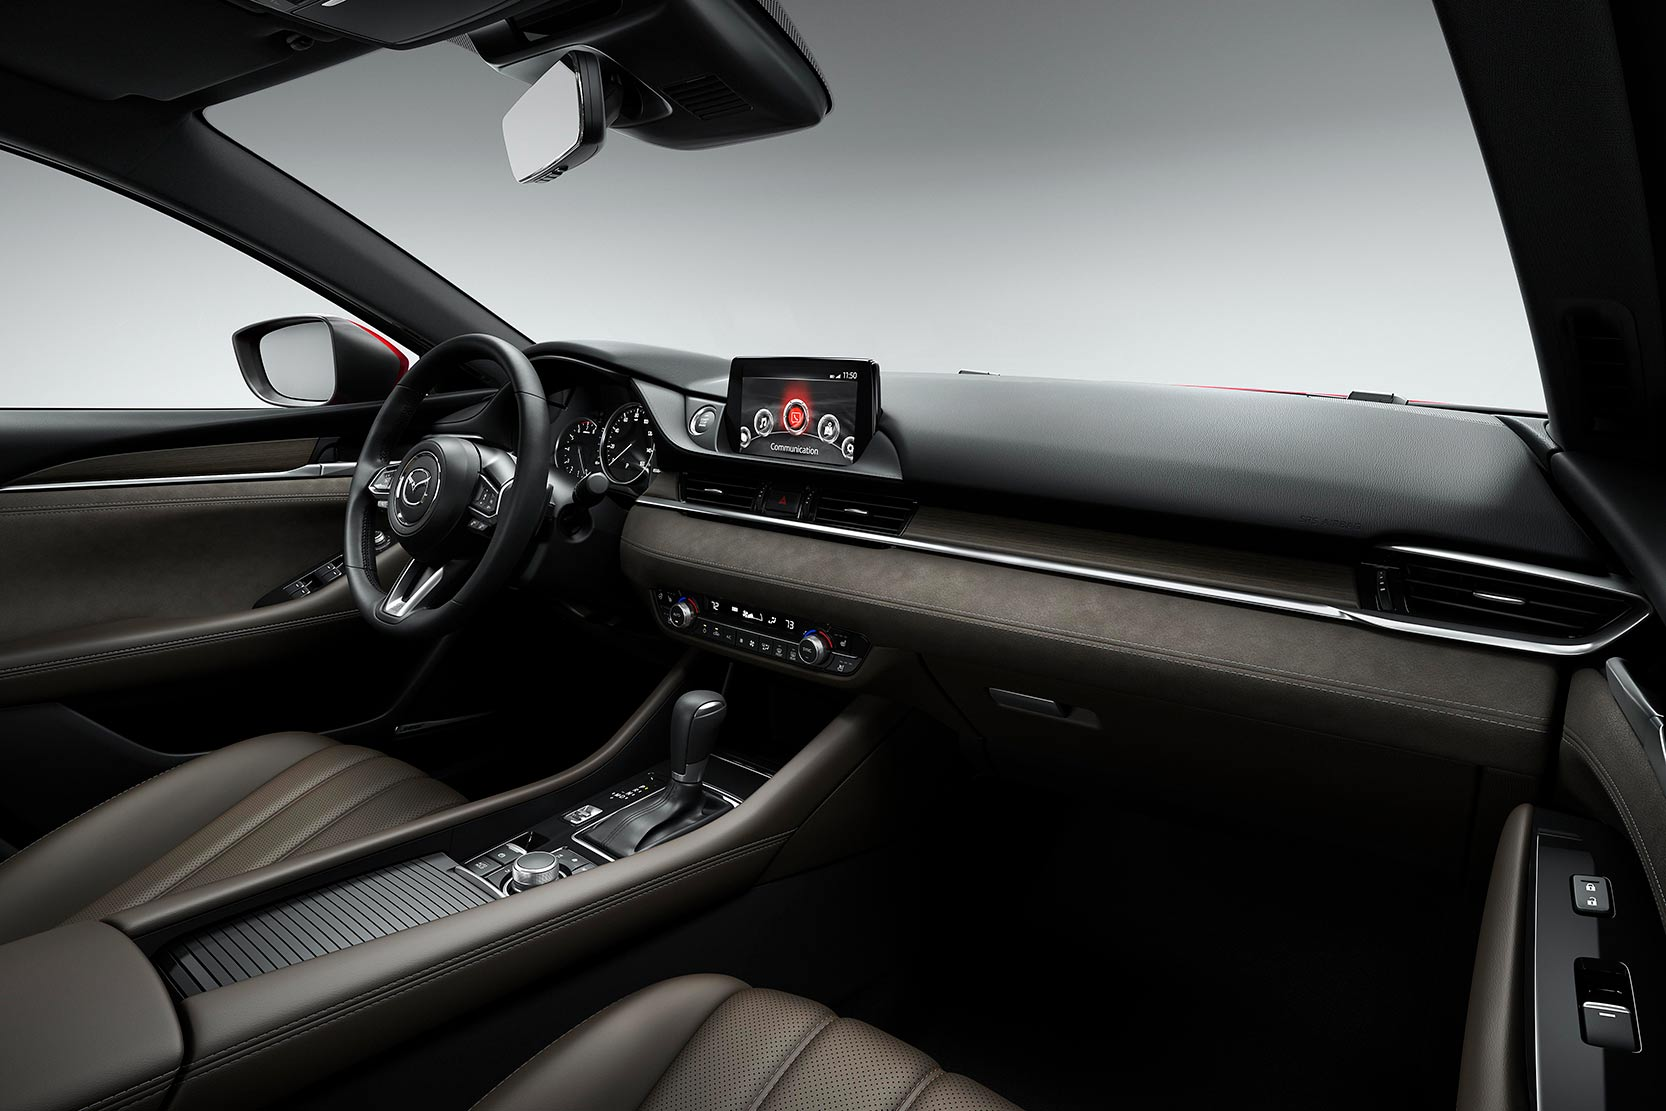 Interieur_Mazda-6-Facelift-2018_13